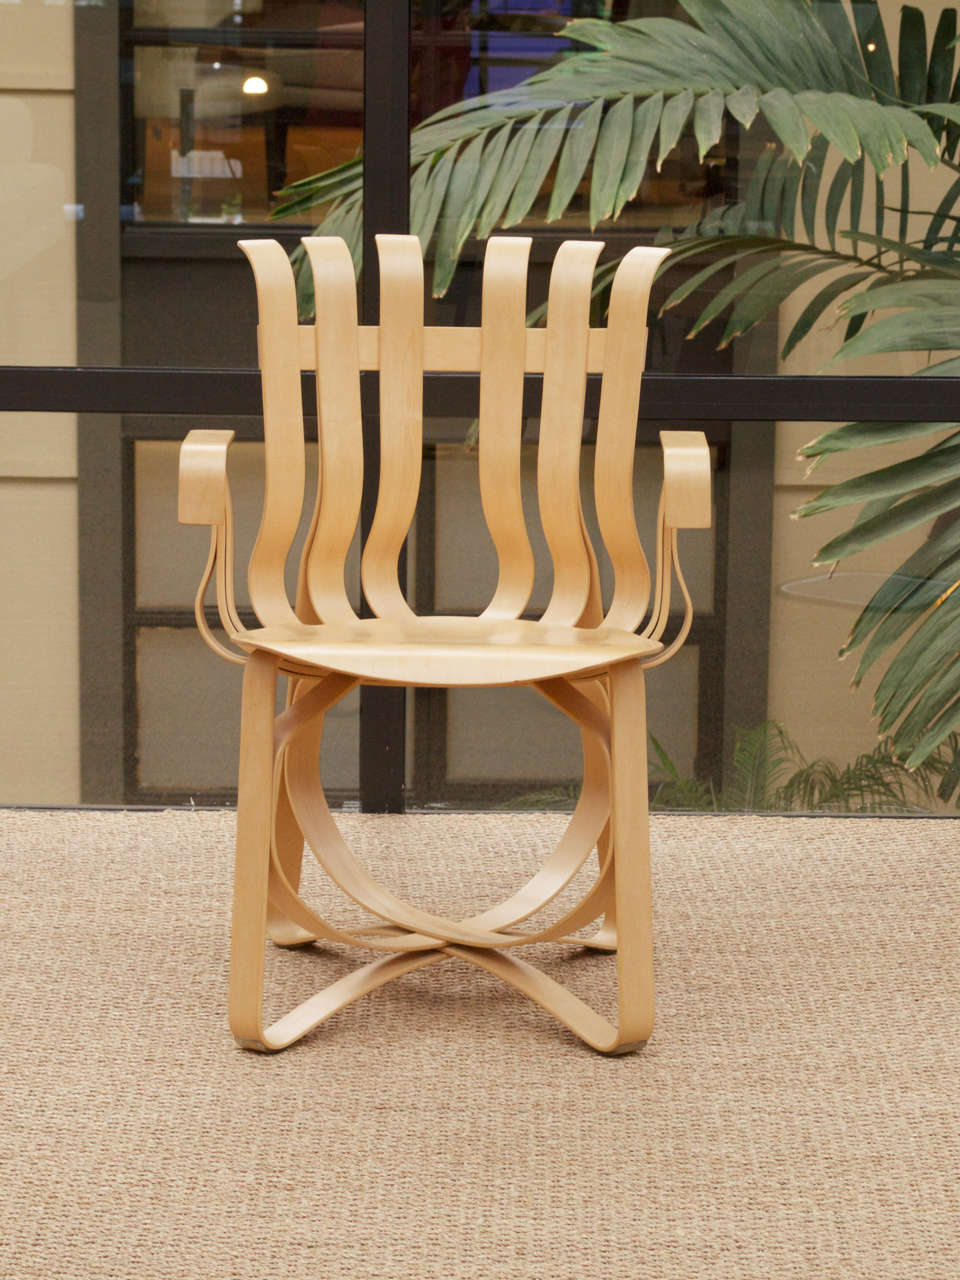 70s chairs is frank o gehry s cardboard chair wiggle side chair - Hat Trick Armchair By Frank Gehry For Knoll 2